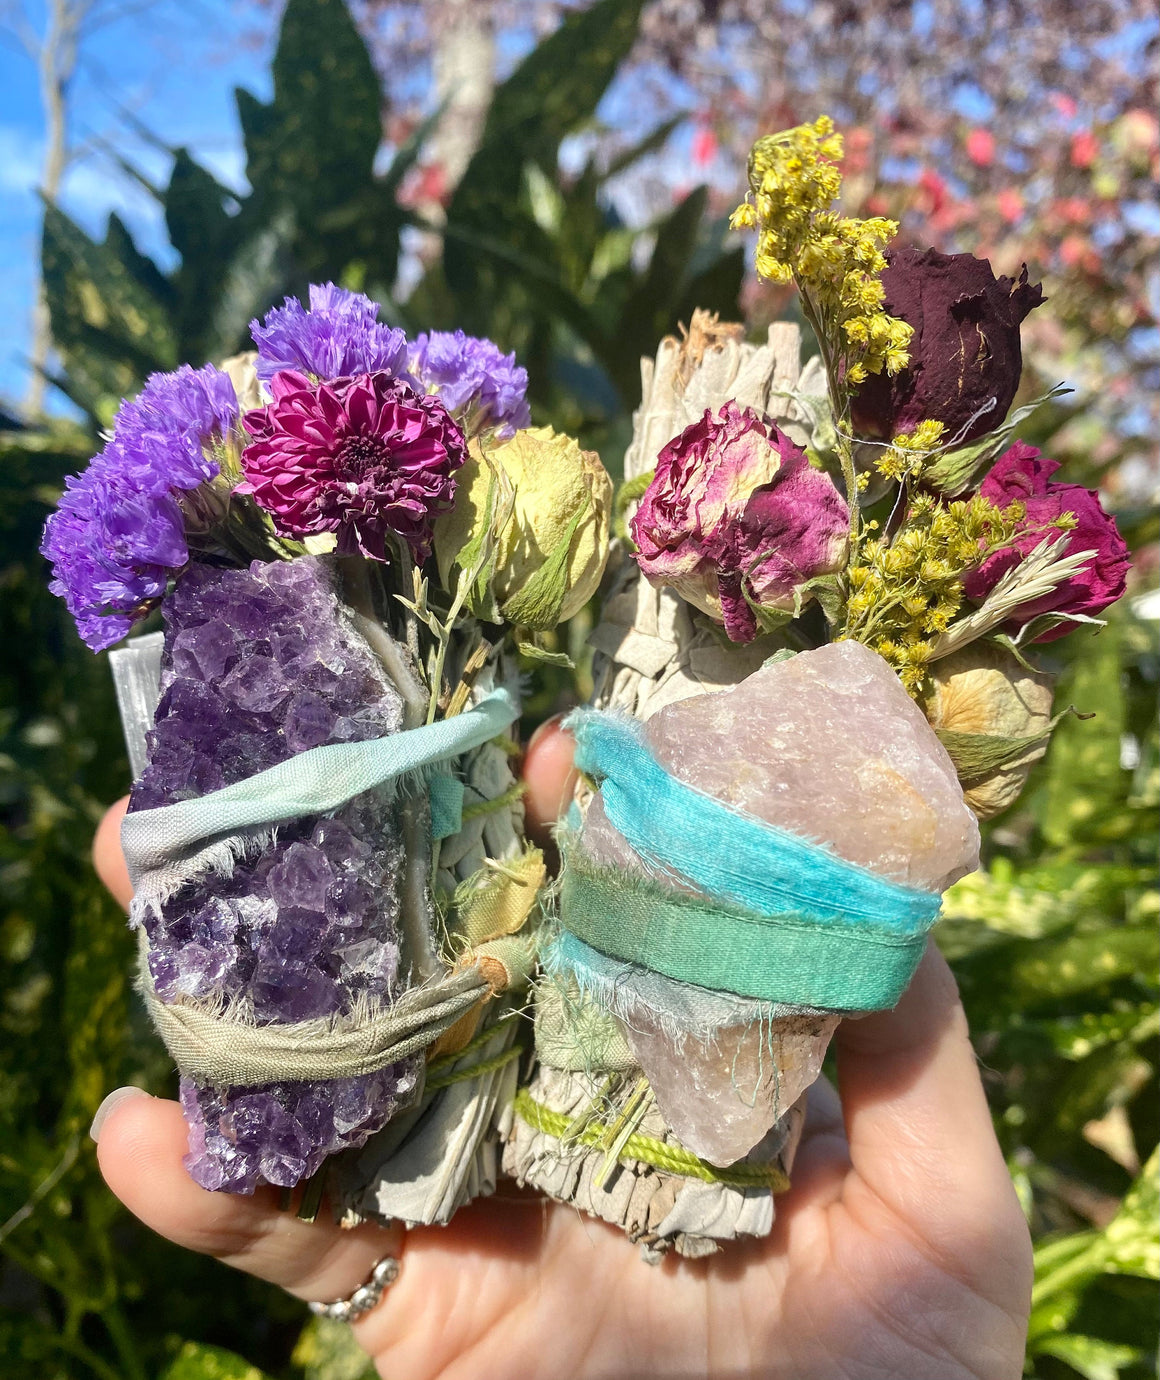 Wildflower sage bundles with crystals bound by dyed cloth